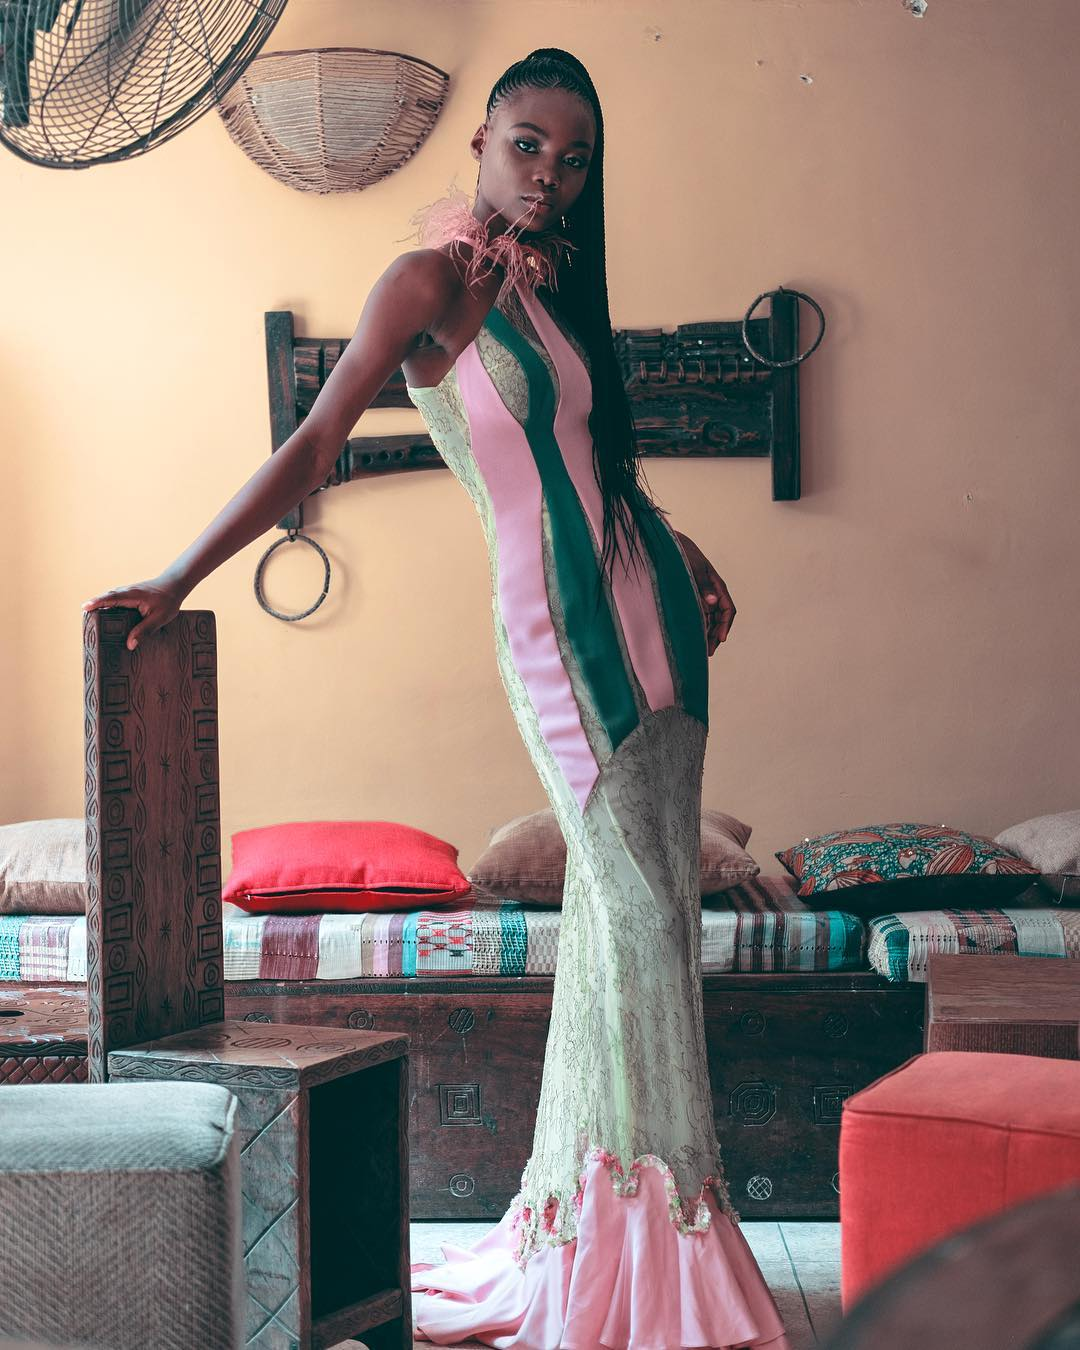 clans-ss18-collection-titled-vent-is-uniquely-exciting-lookbook